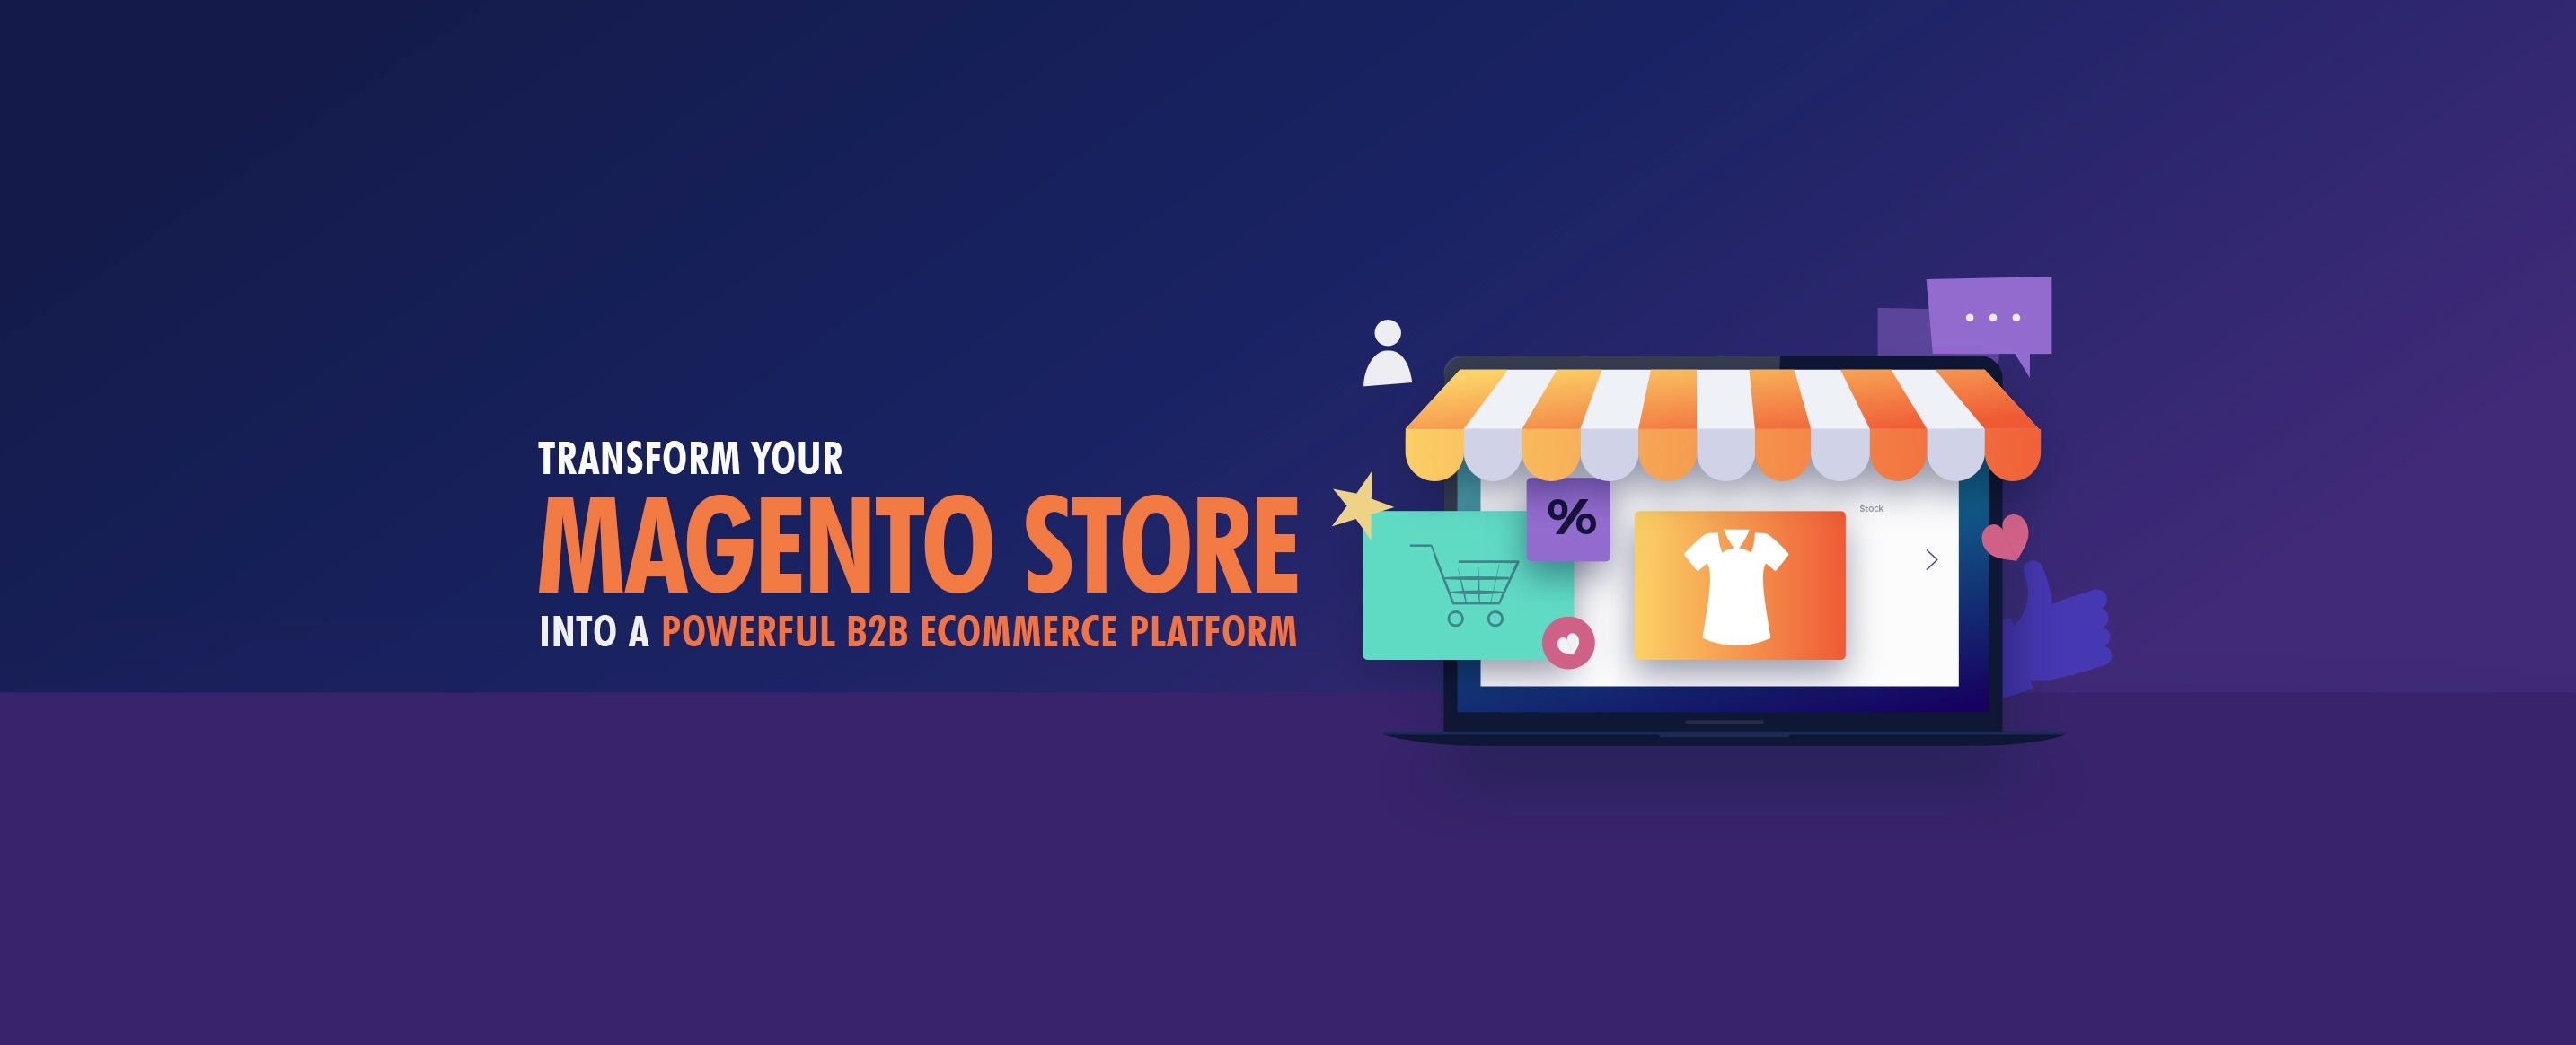 Transform-your-Magento-Store-into-a-Powerful-B2B-Ecommerce-Platform